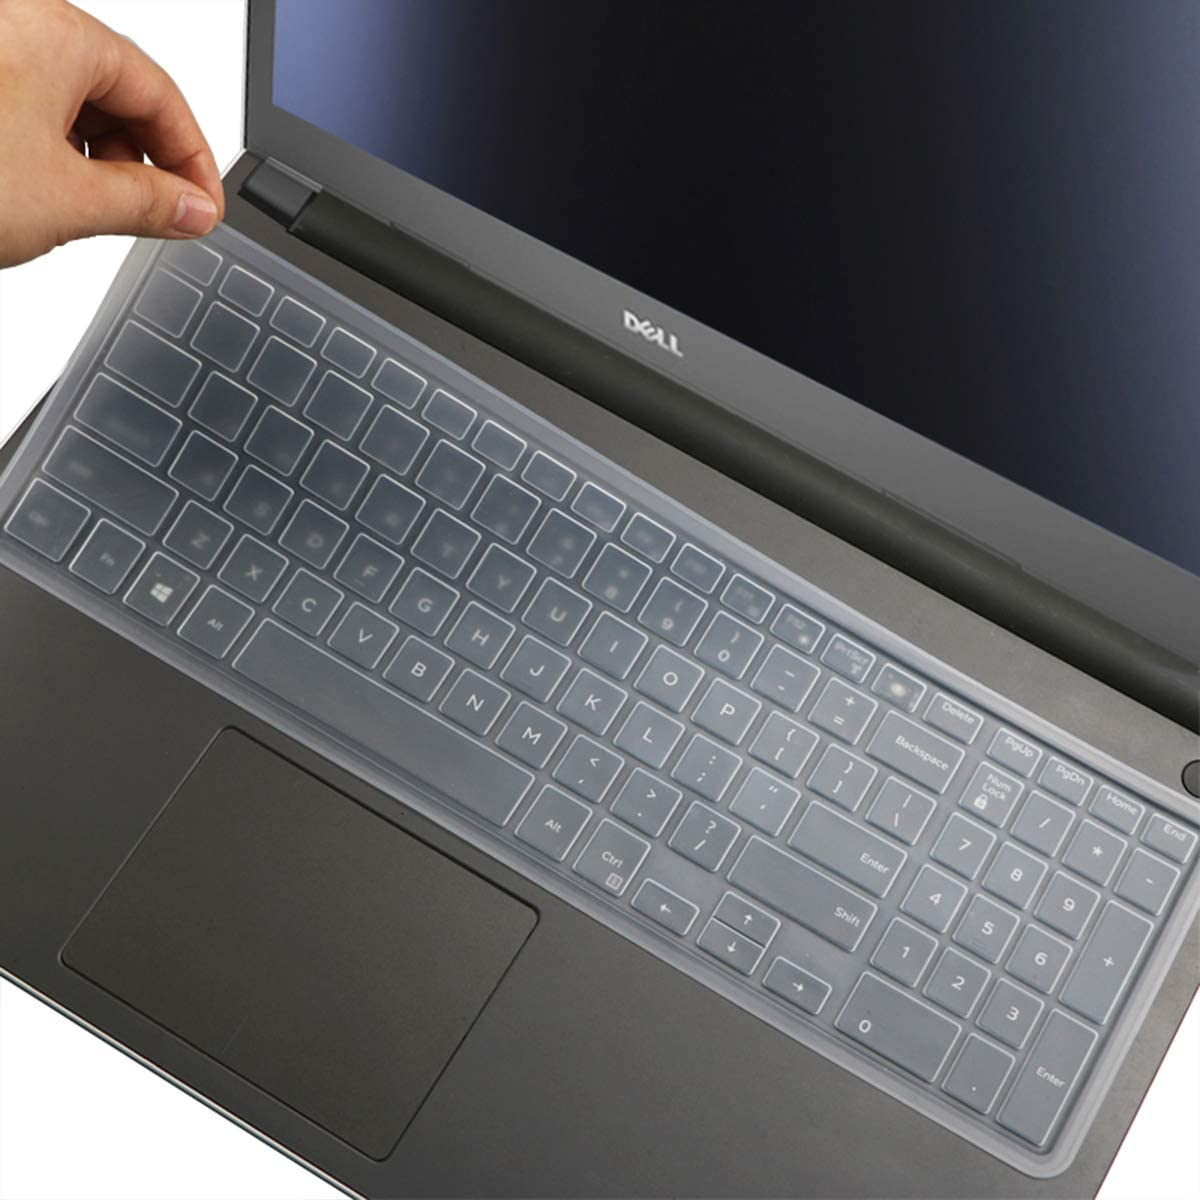 Keyboard Cover for Dell Vostro 15 3000 Series 3591 3590 3584 3583 3562 3560 3558 3550 3549 3546, Dell Vostro 15 5000 7000 Series 5568 7570 7580 US Keyboard Cover (with Numeric Keypad) -Clean